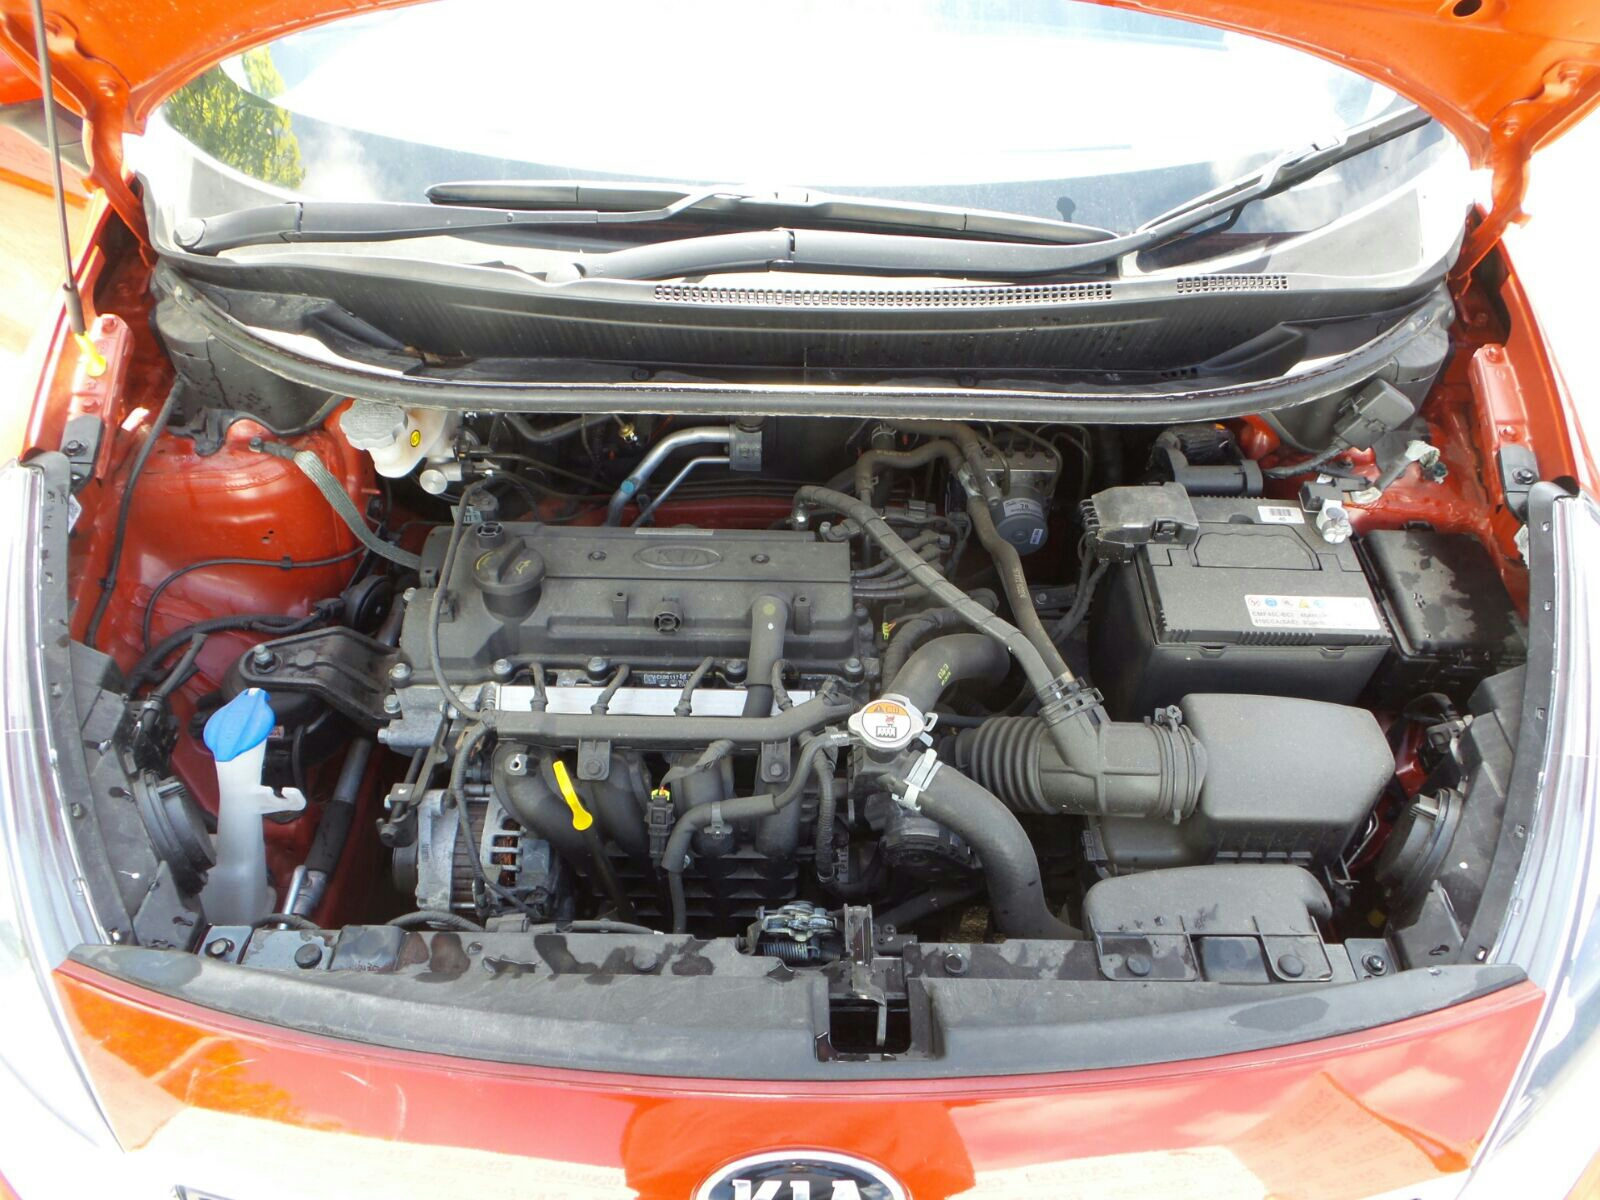 Second Hand & Used Car Parts Online | Hills Salvage & Recycling Ltd